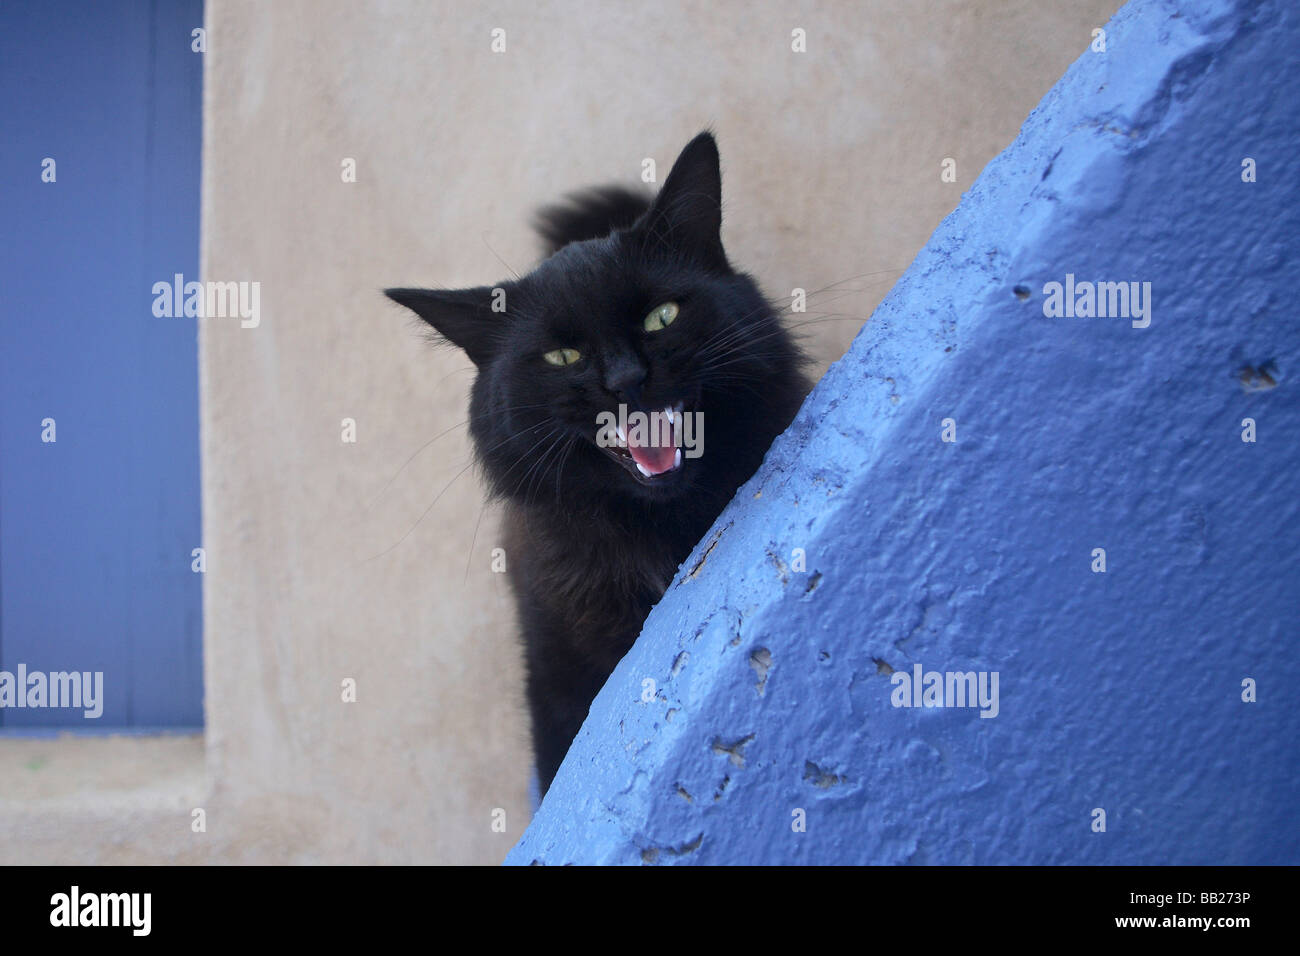 Domestic Cat (Felis silvestris, Felis catus). Black cat snarling - Stock Image